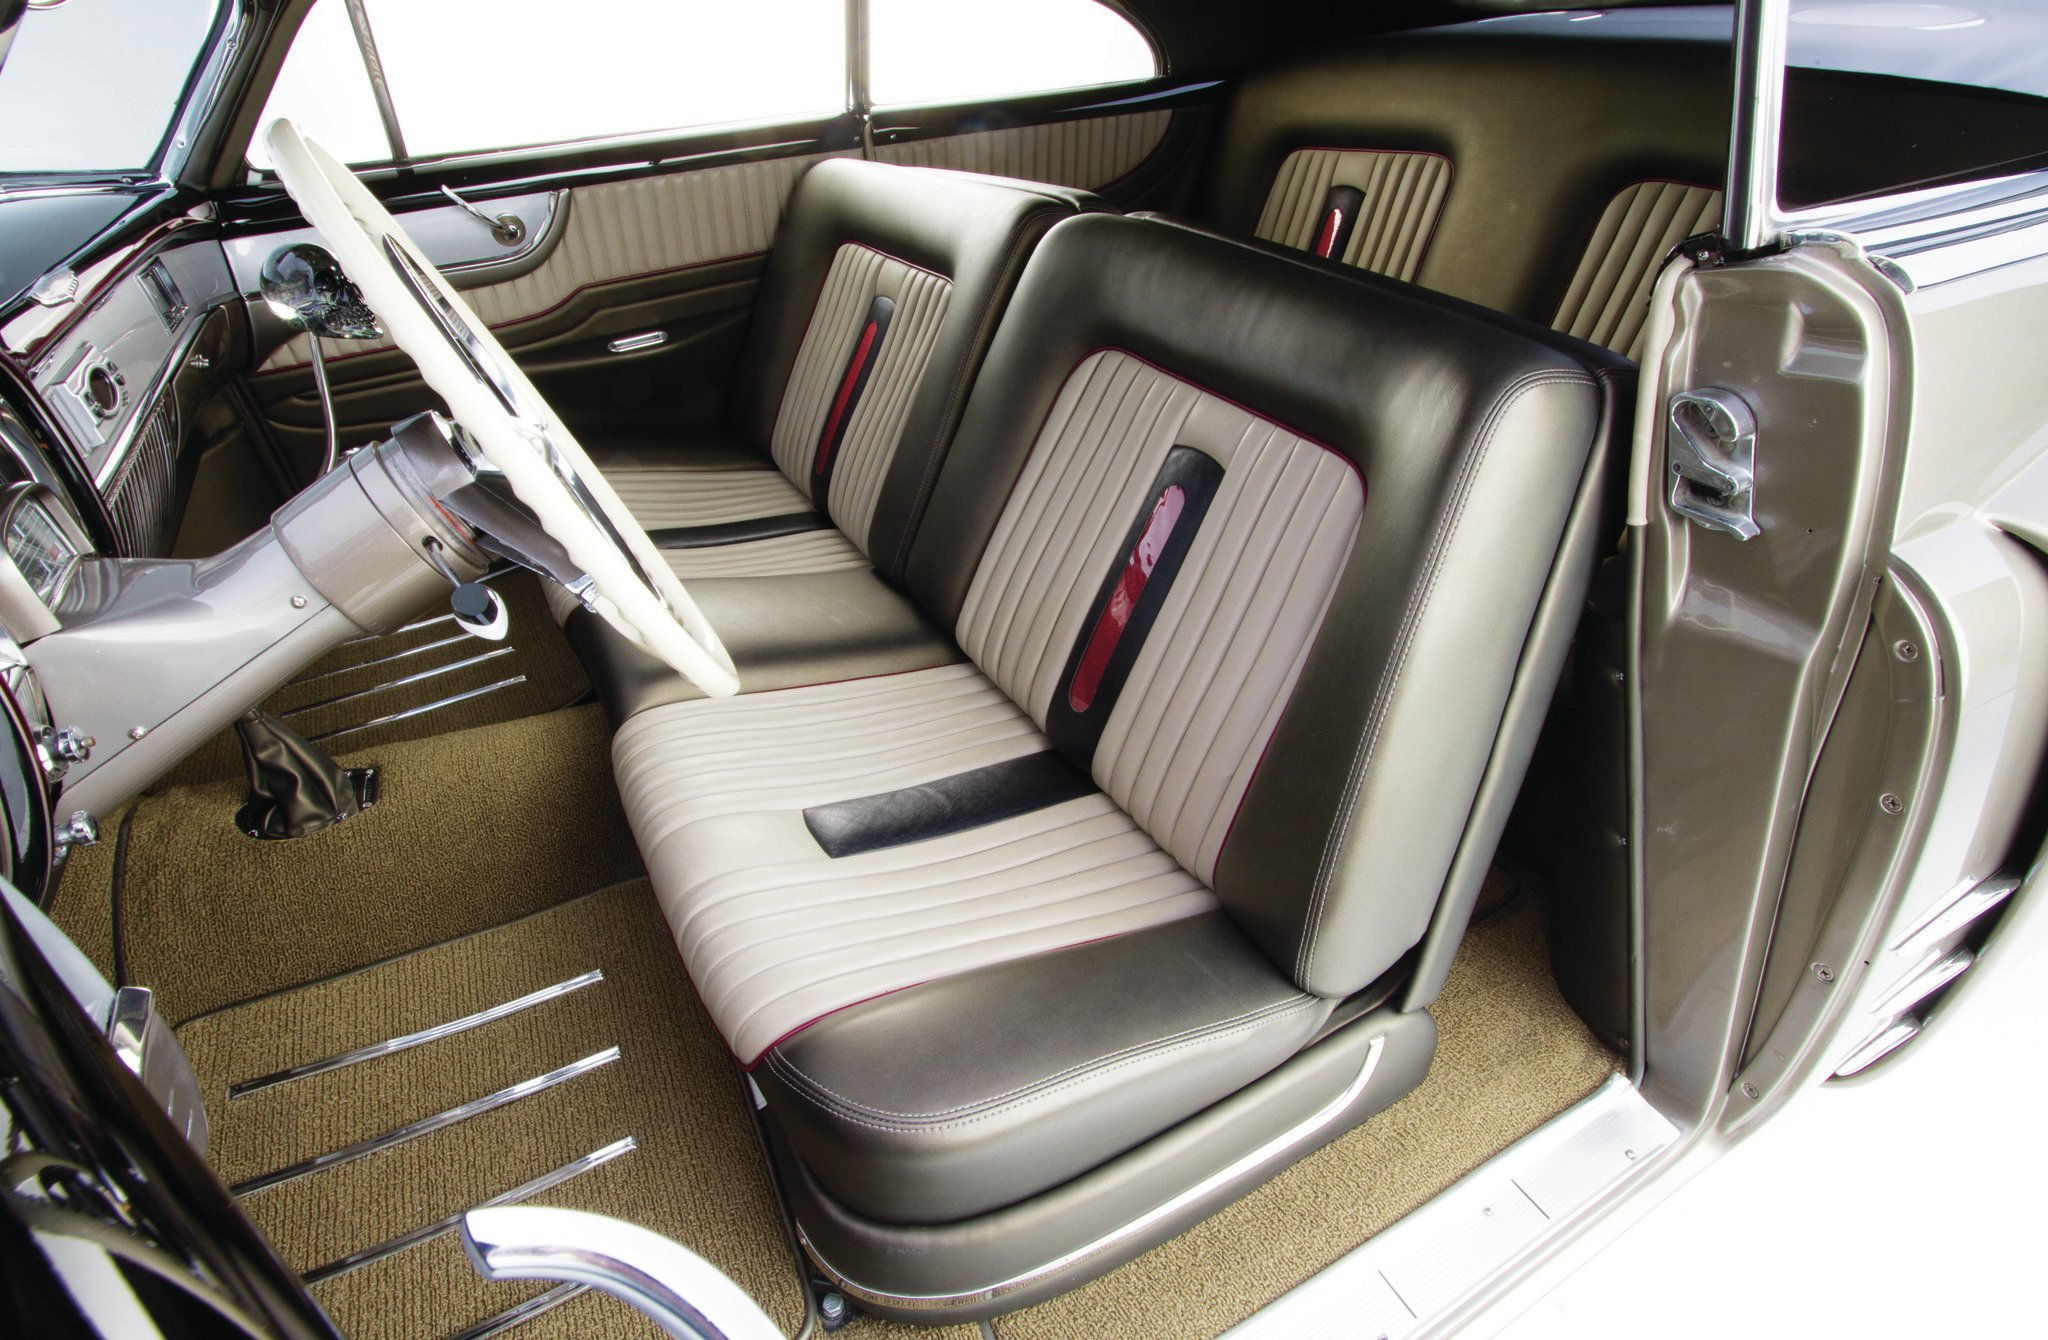 Mike's Cad carries the body colors and accents into the upholstery, done by Elegance Auto Interiors in Upland, California. The sculptured door panels tie in well with the brushed panels that carry the dash into the doors, a nice touch found on all '51 Cads.